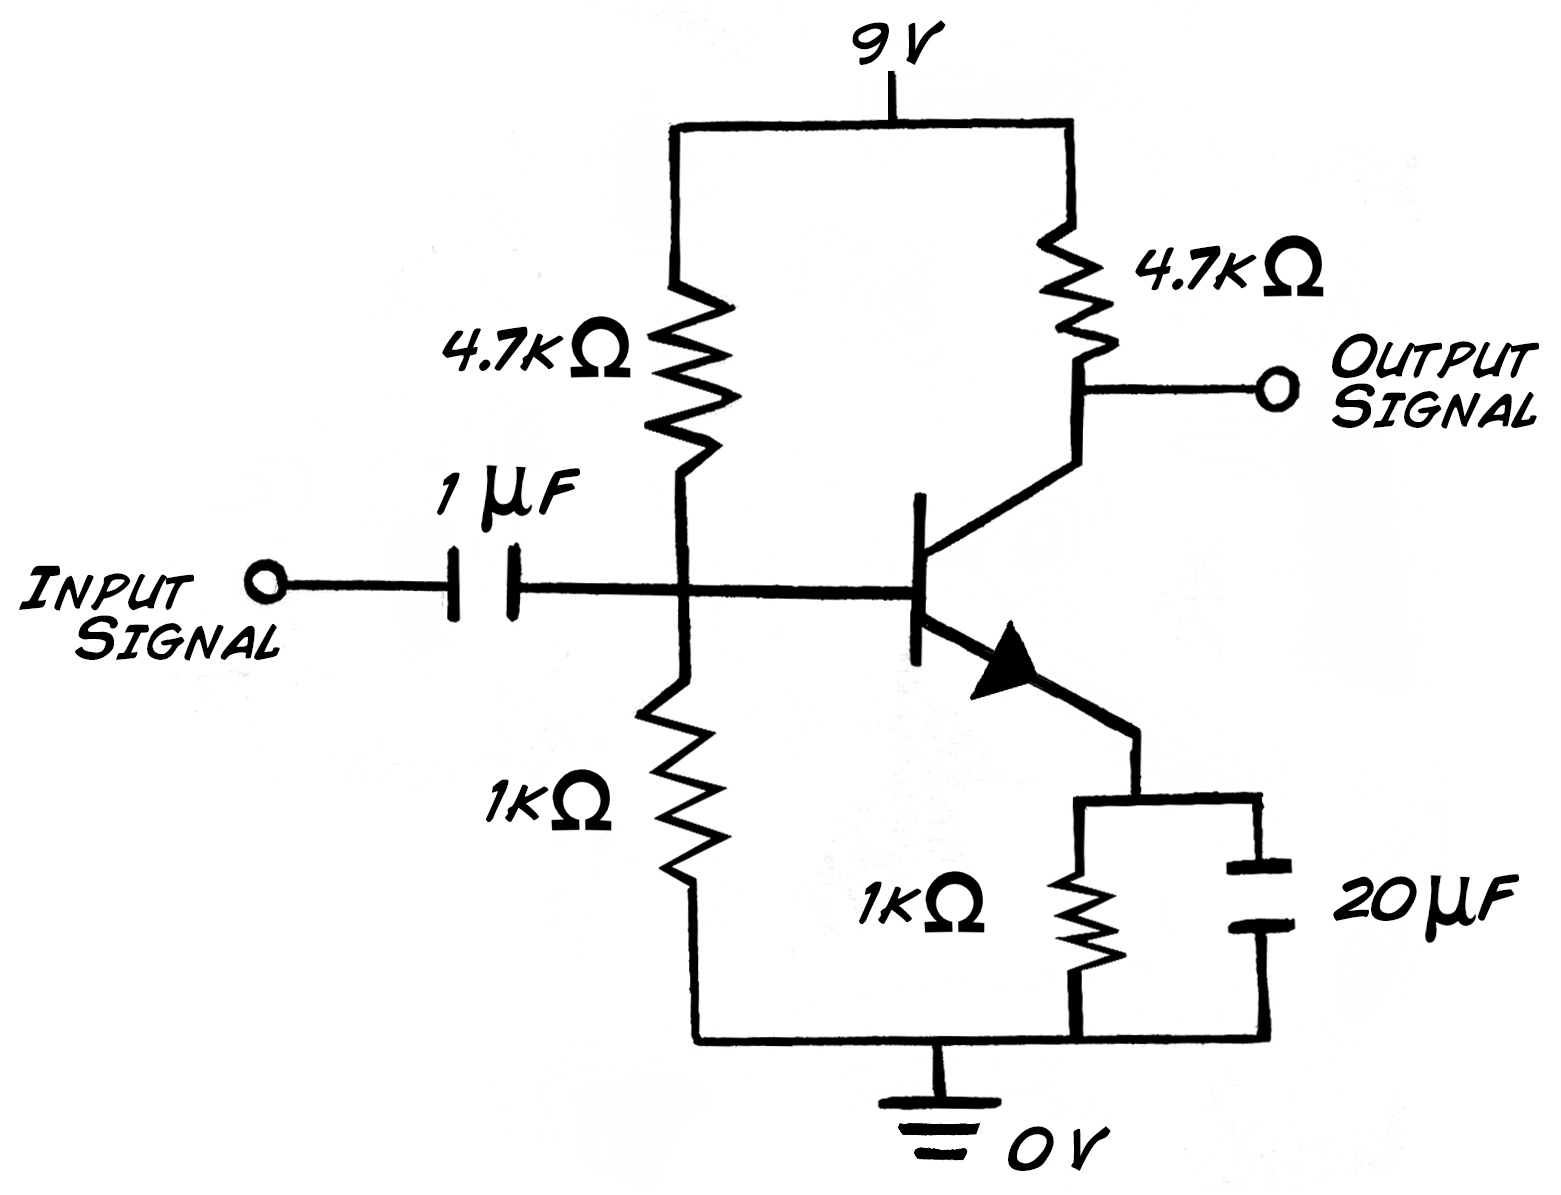 Experiment Transistor Circuit Design By Connecting All Three Resistors In Series With Your Power